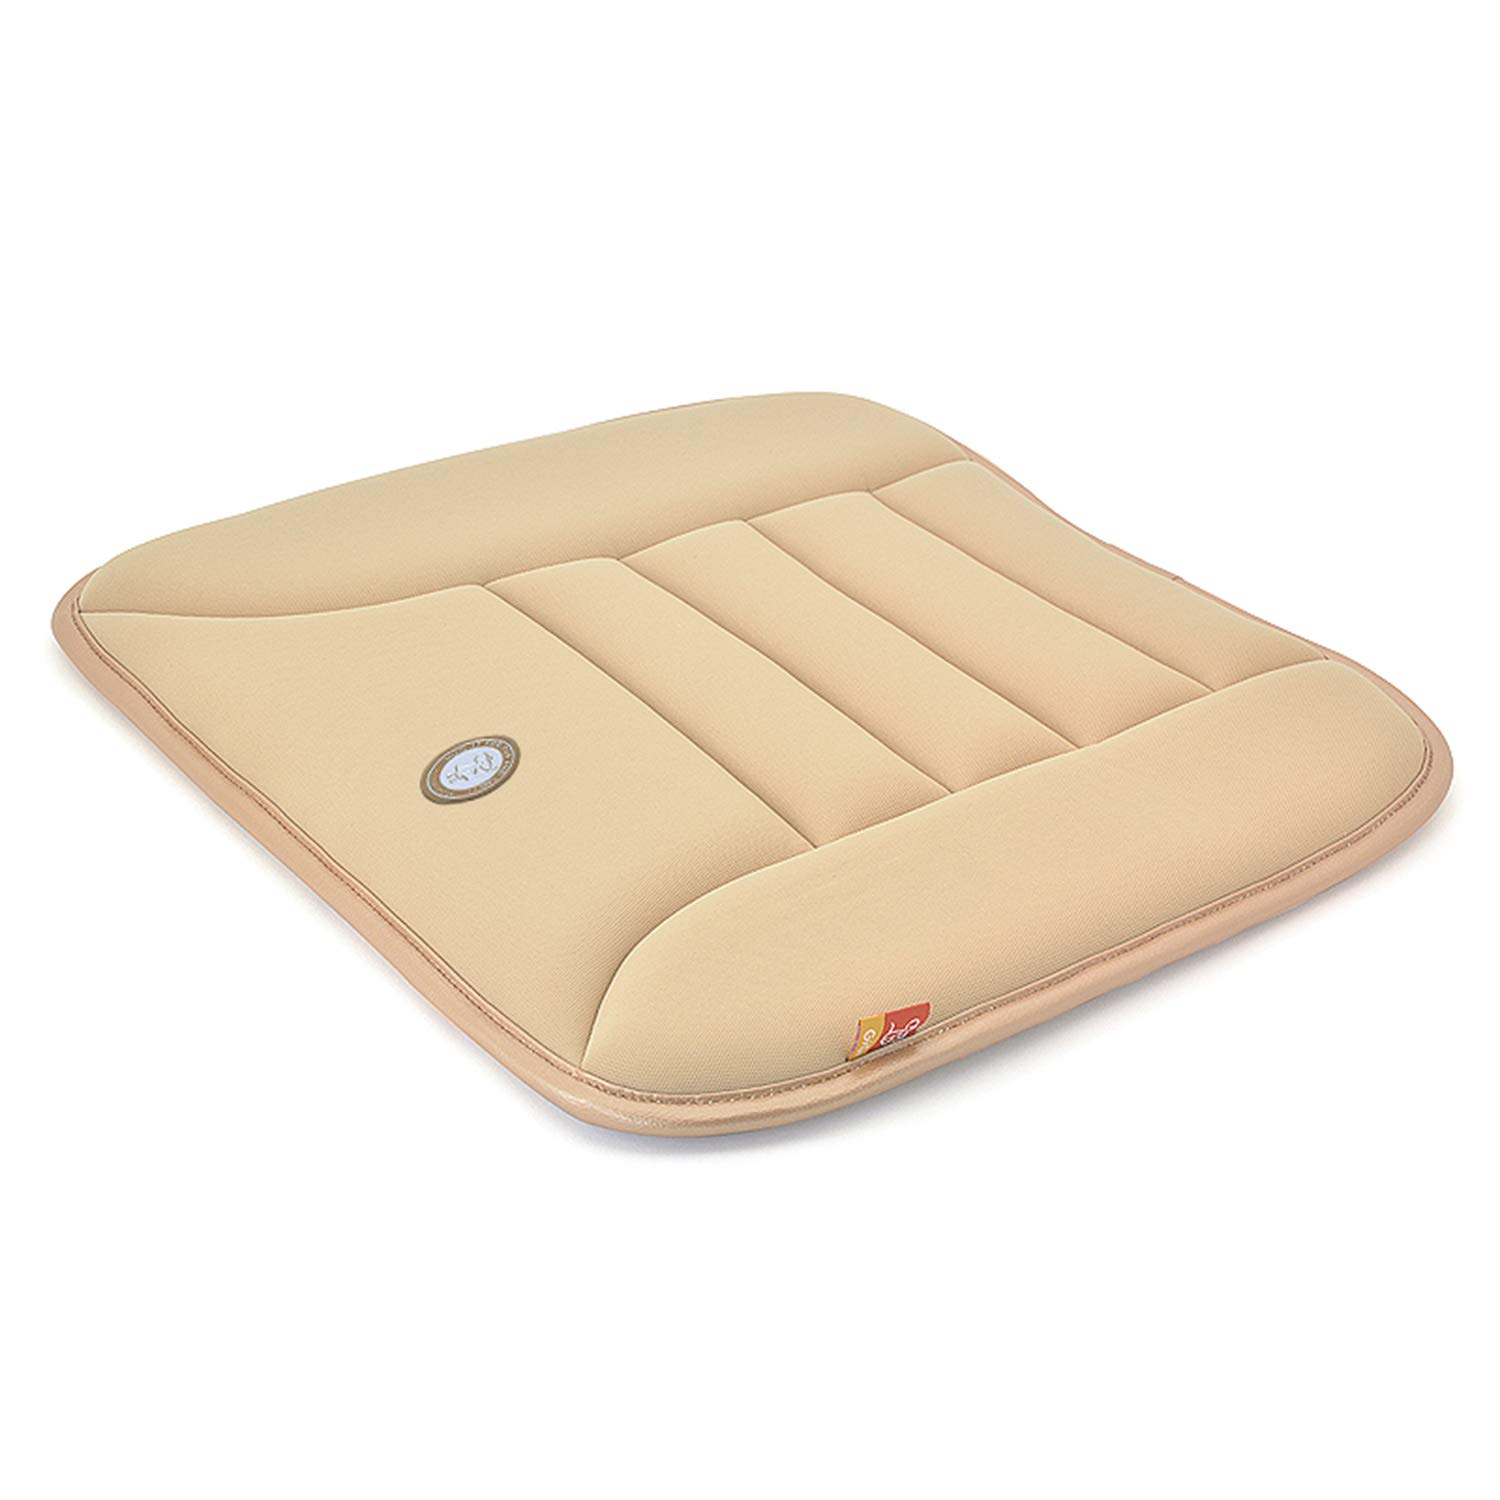 Pure Memory Foam Seat Cushion – Easy to Install Portable Pad, Health Care Portable Hip Support for Home Office Chair Car Driving Cover - Beige